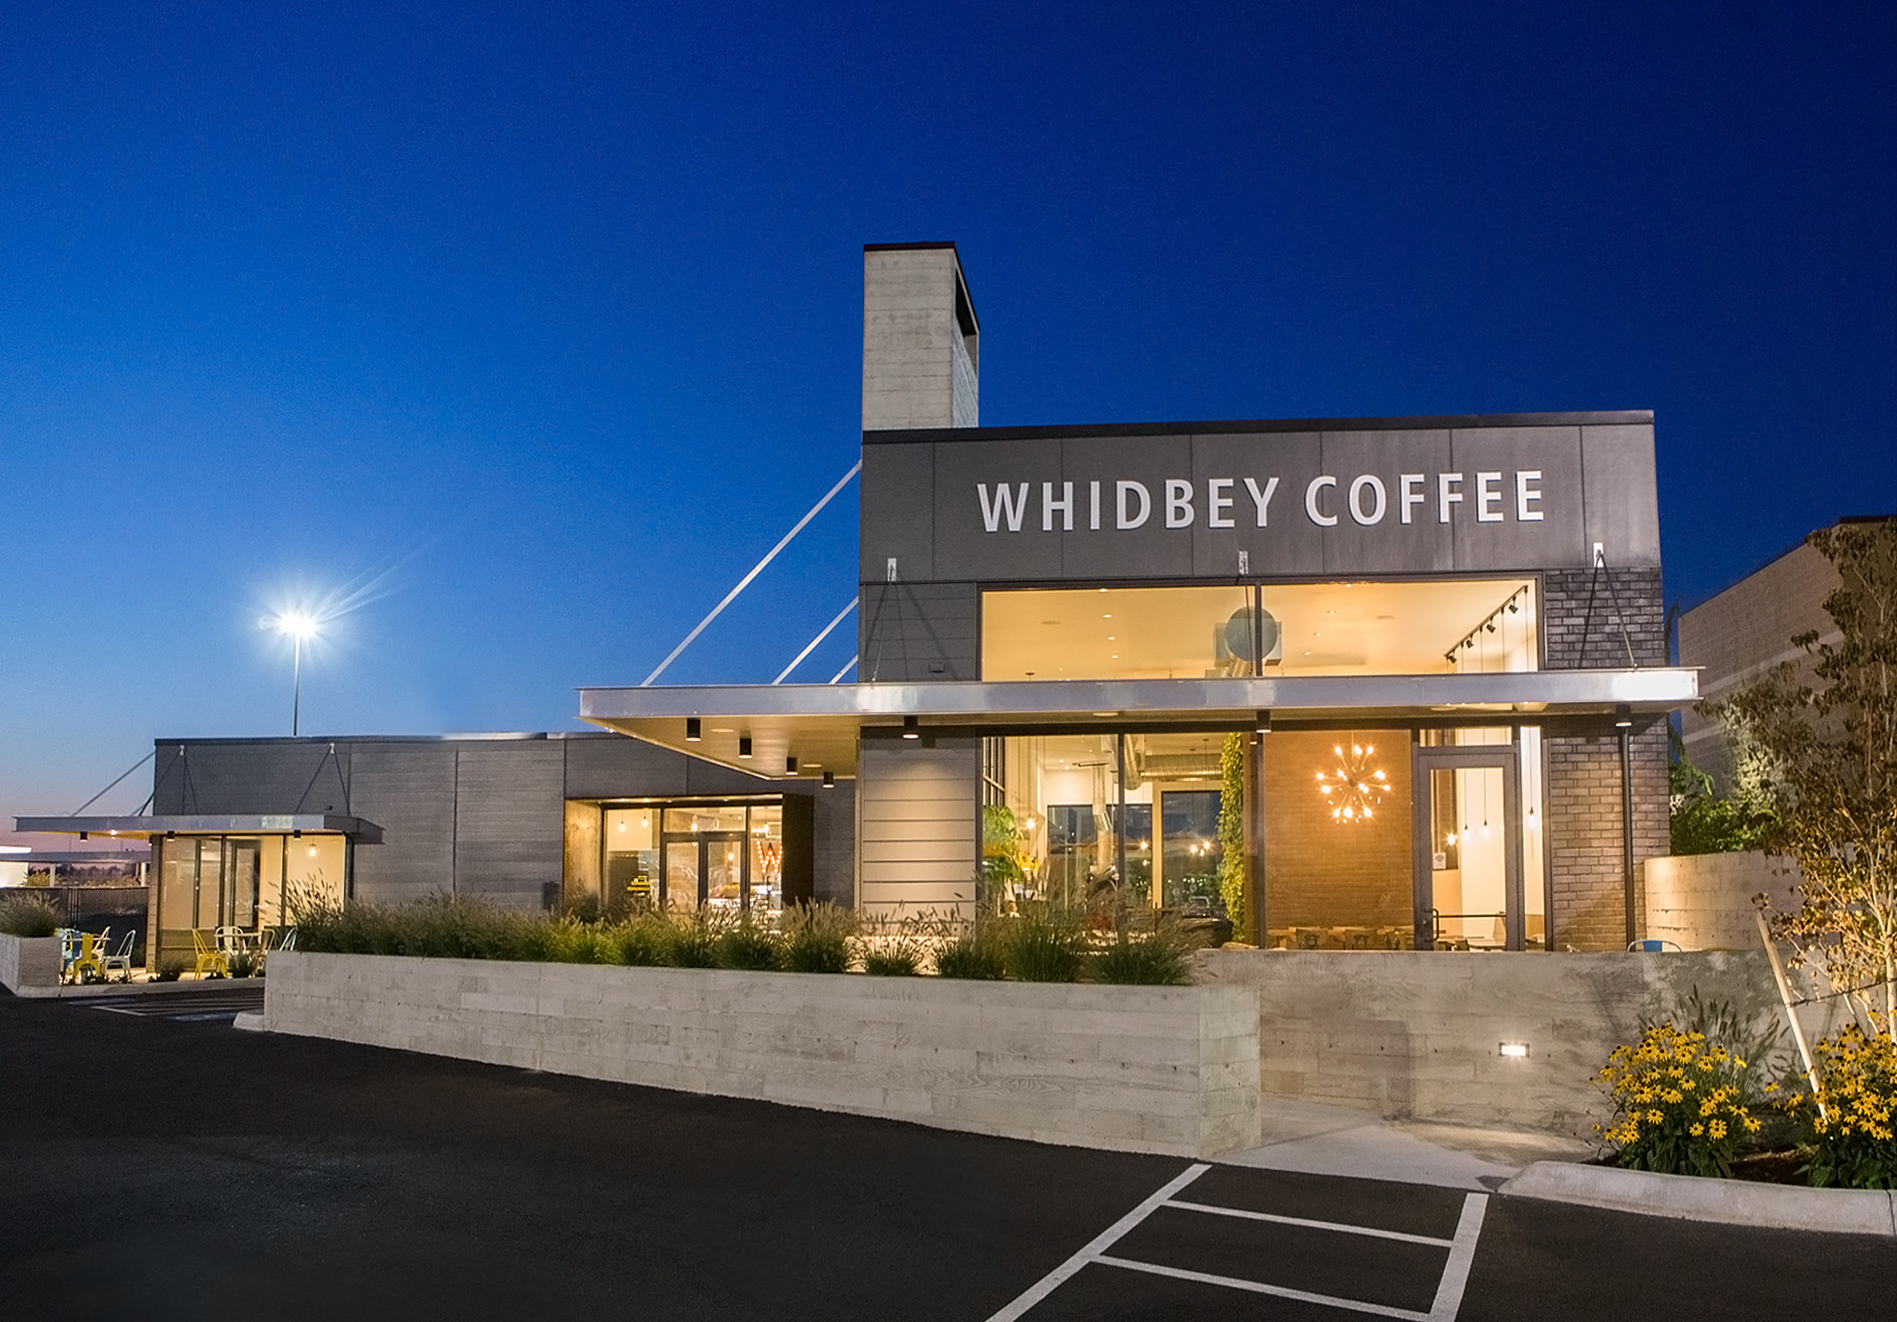 Whidbey Coffee - Exterior 1